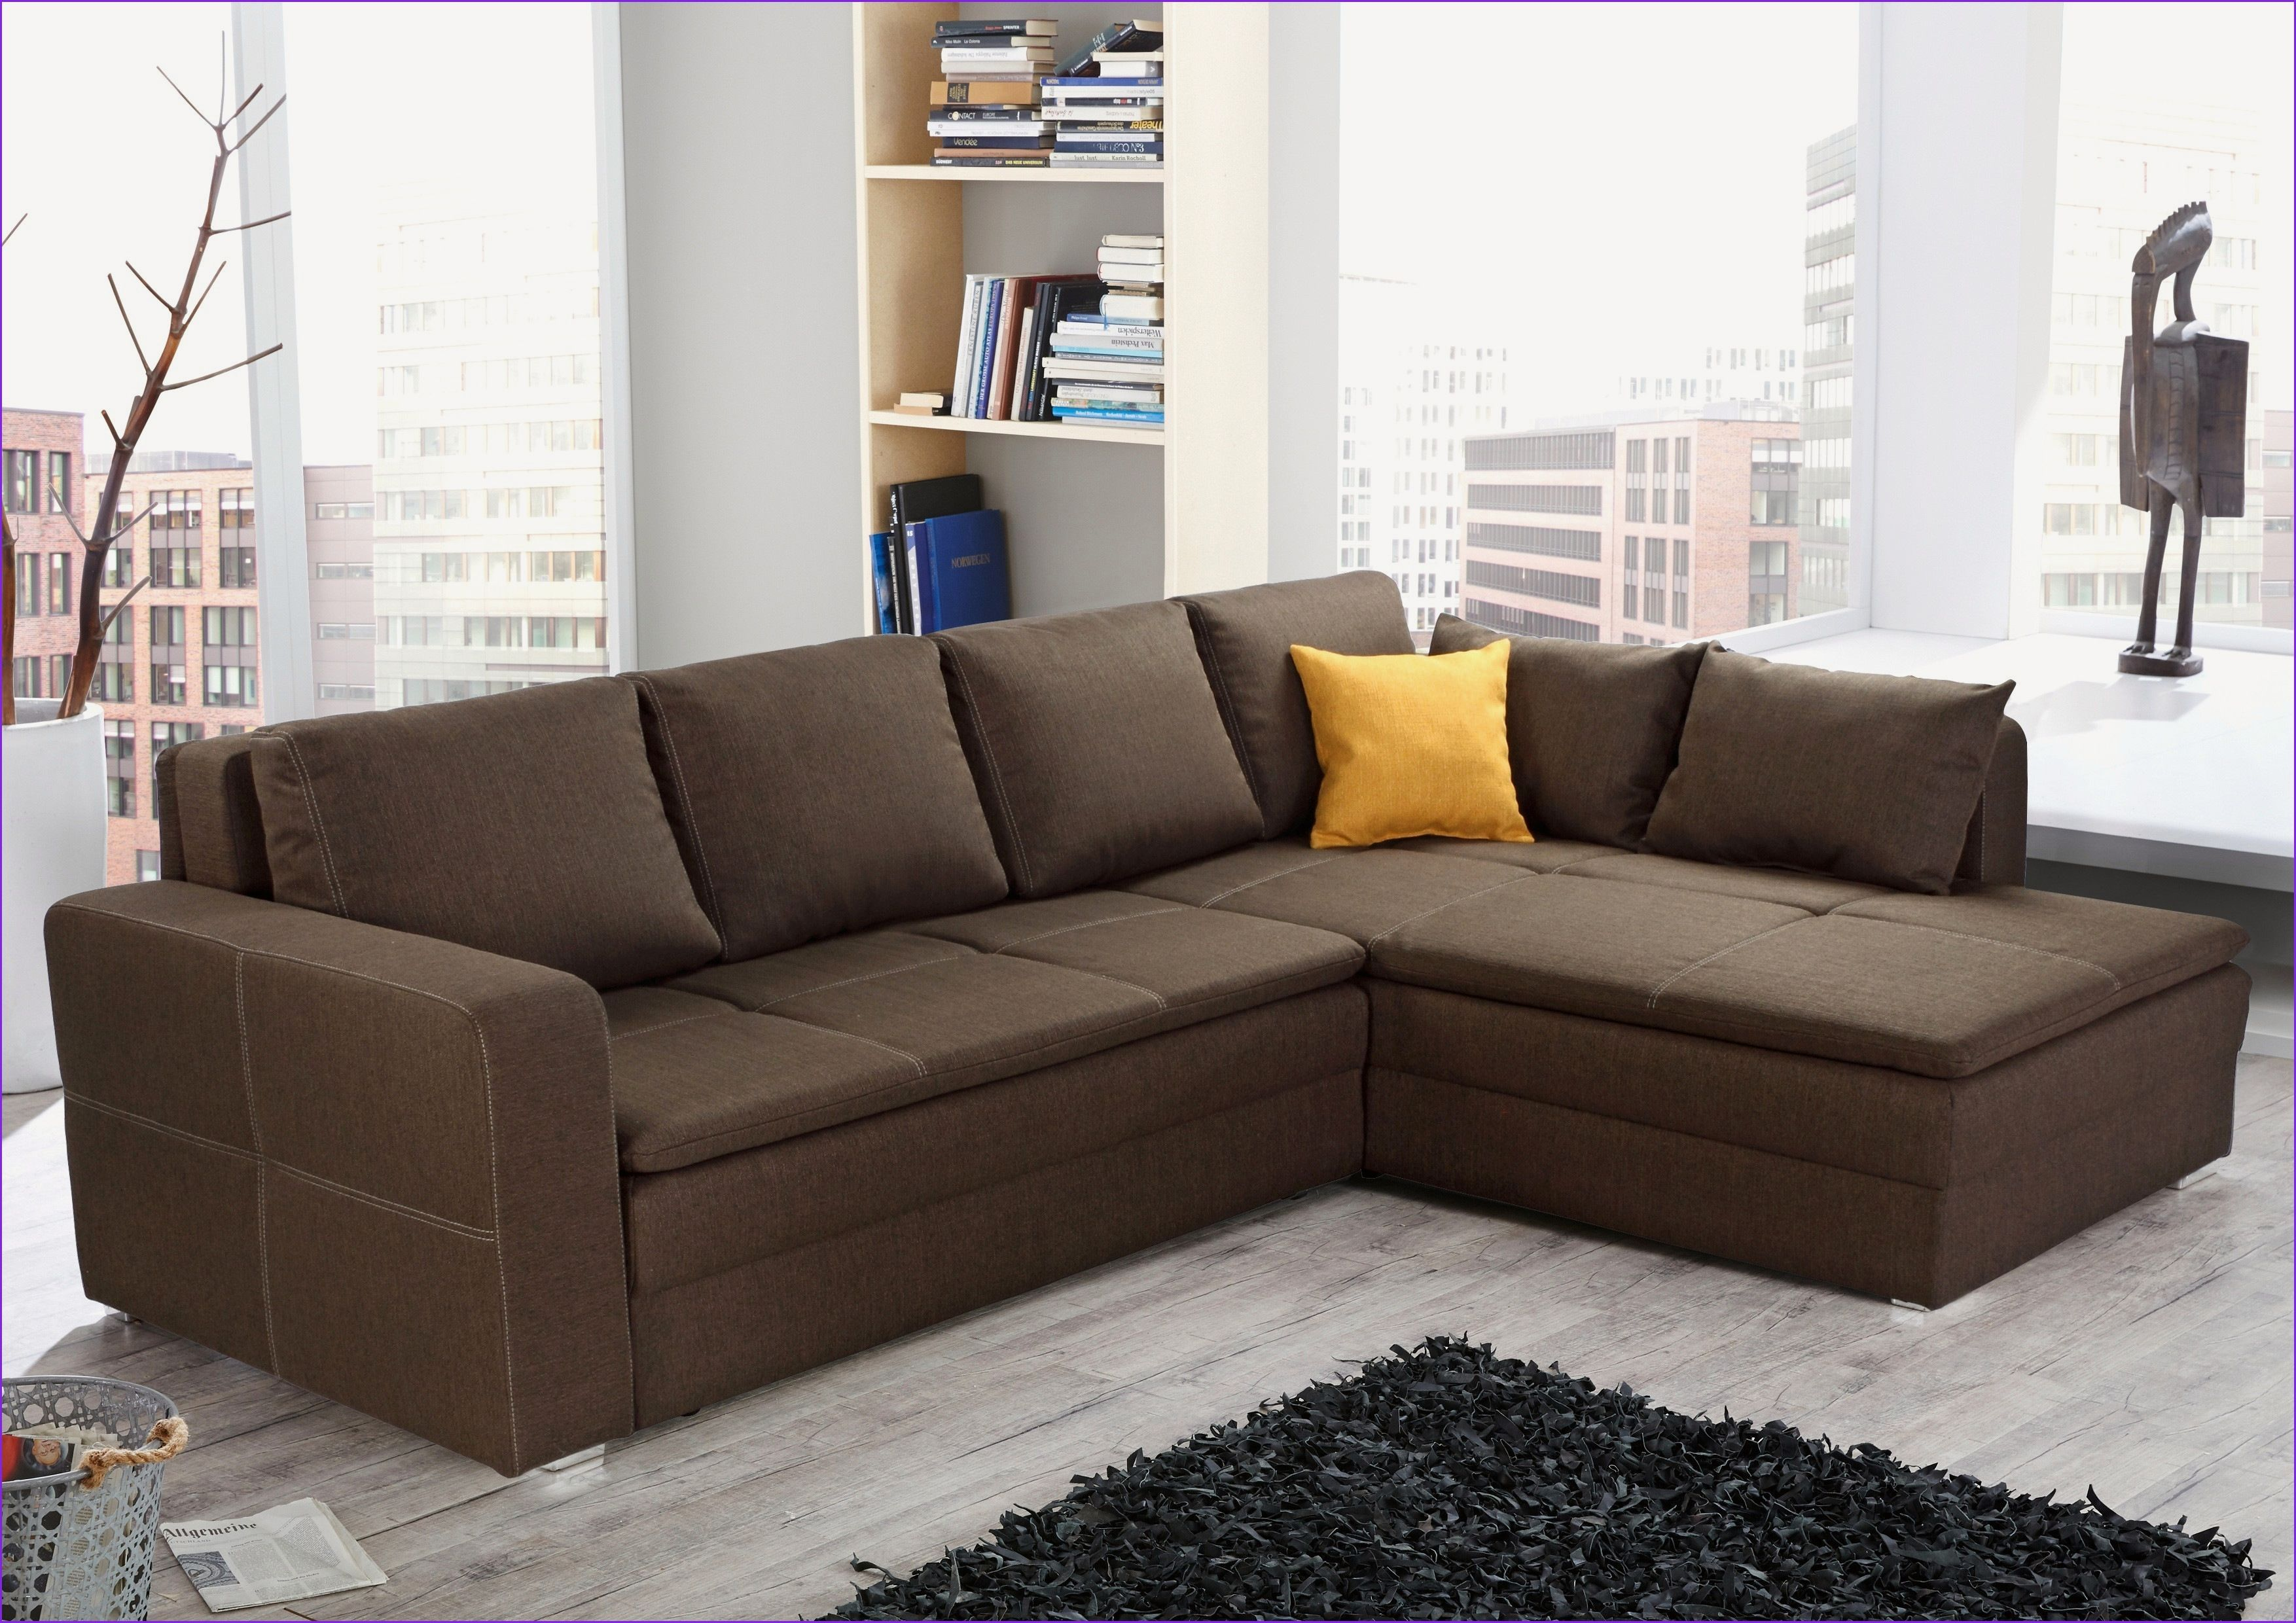 Awesome Patio Covers Costco Modern Sofa Sectional Contemporary